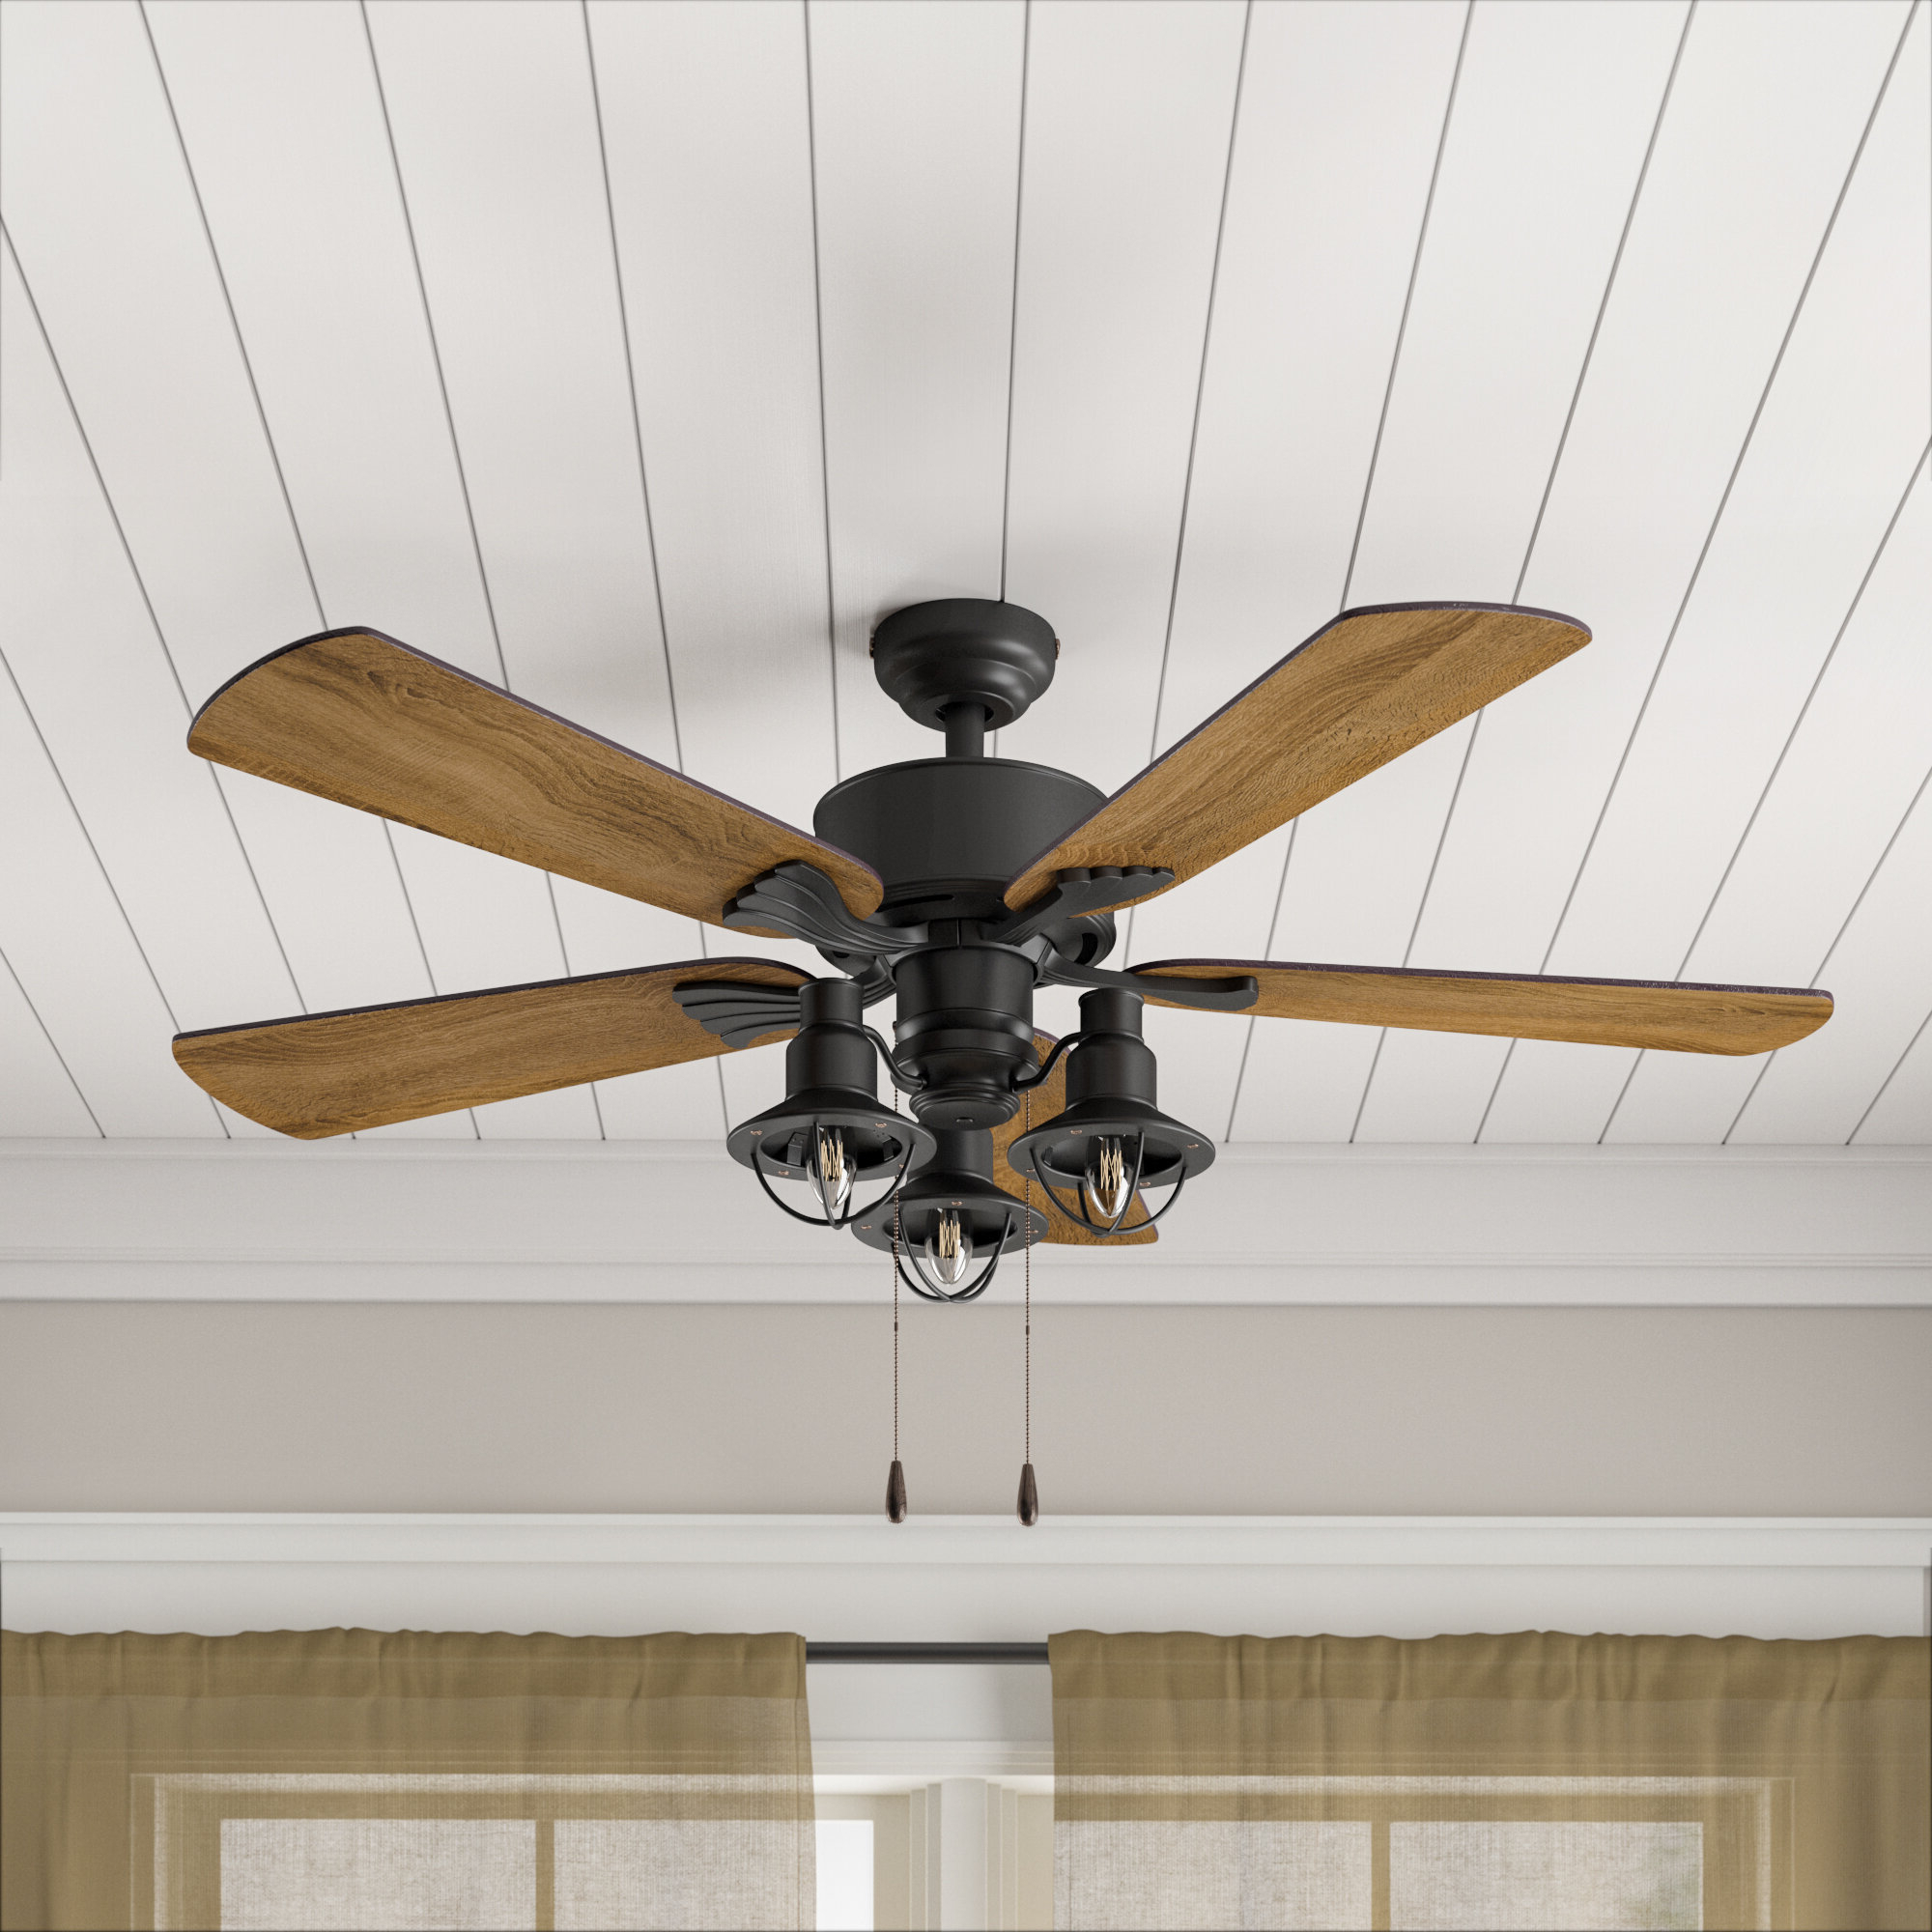 "Most Current Ratcliffe 5 Blade Led Ceiling Fans With Regard To 52"" Ratcliffe 5 Blade Led Ceiling Fan, Light Kit Included (View 12 of 20)"